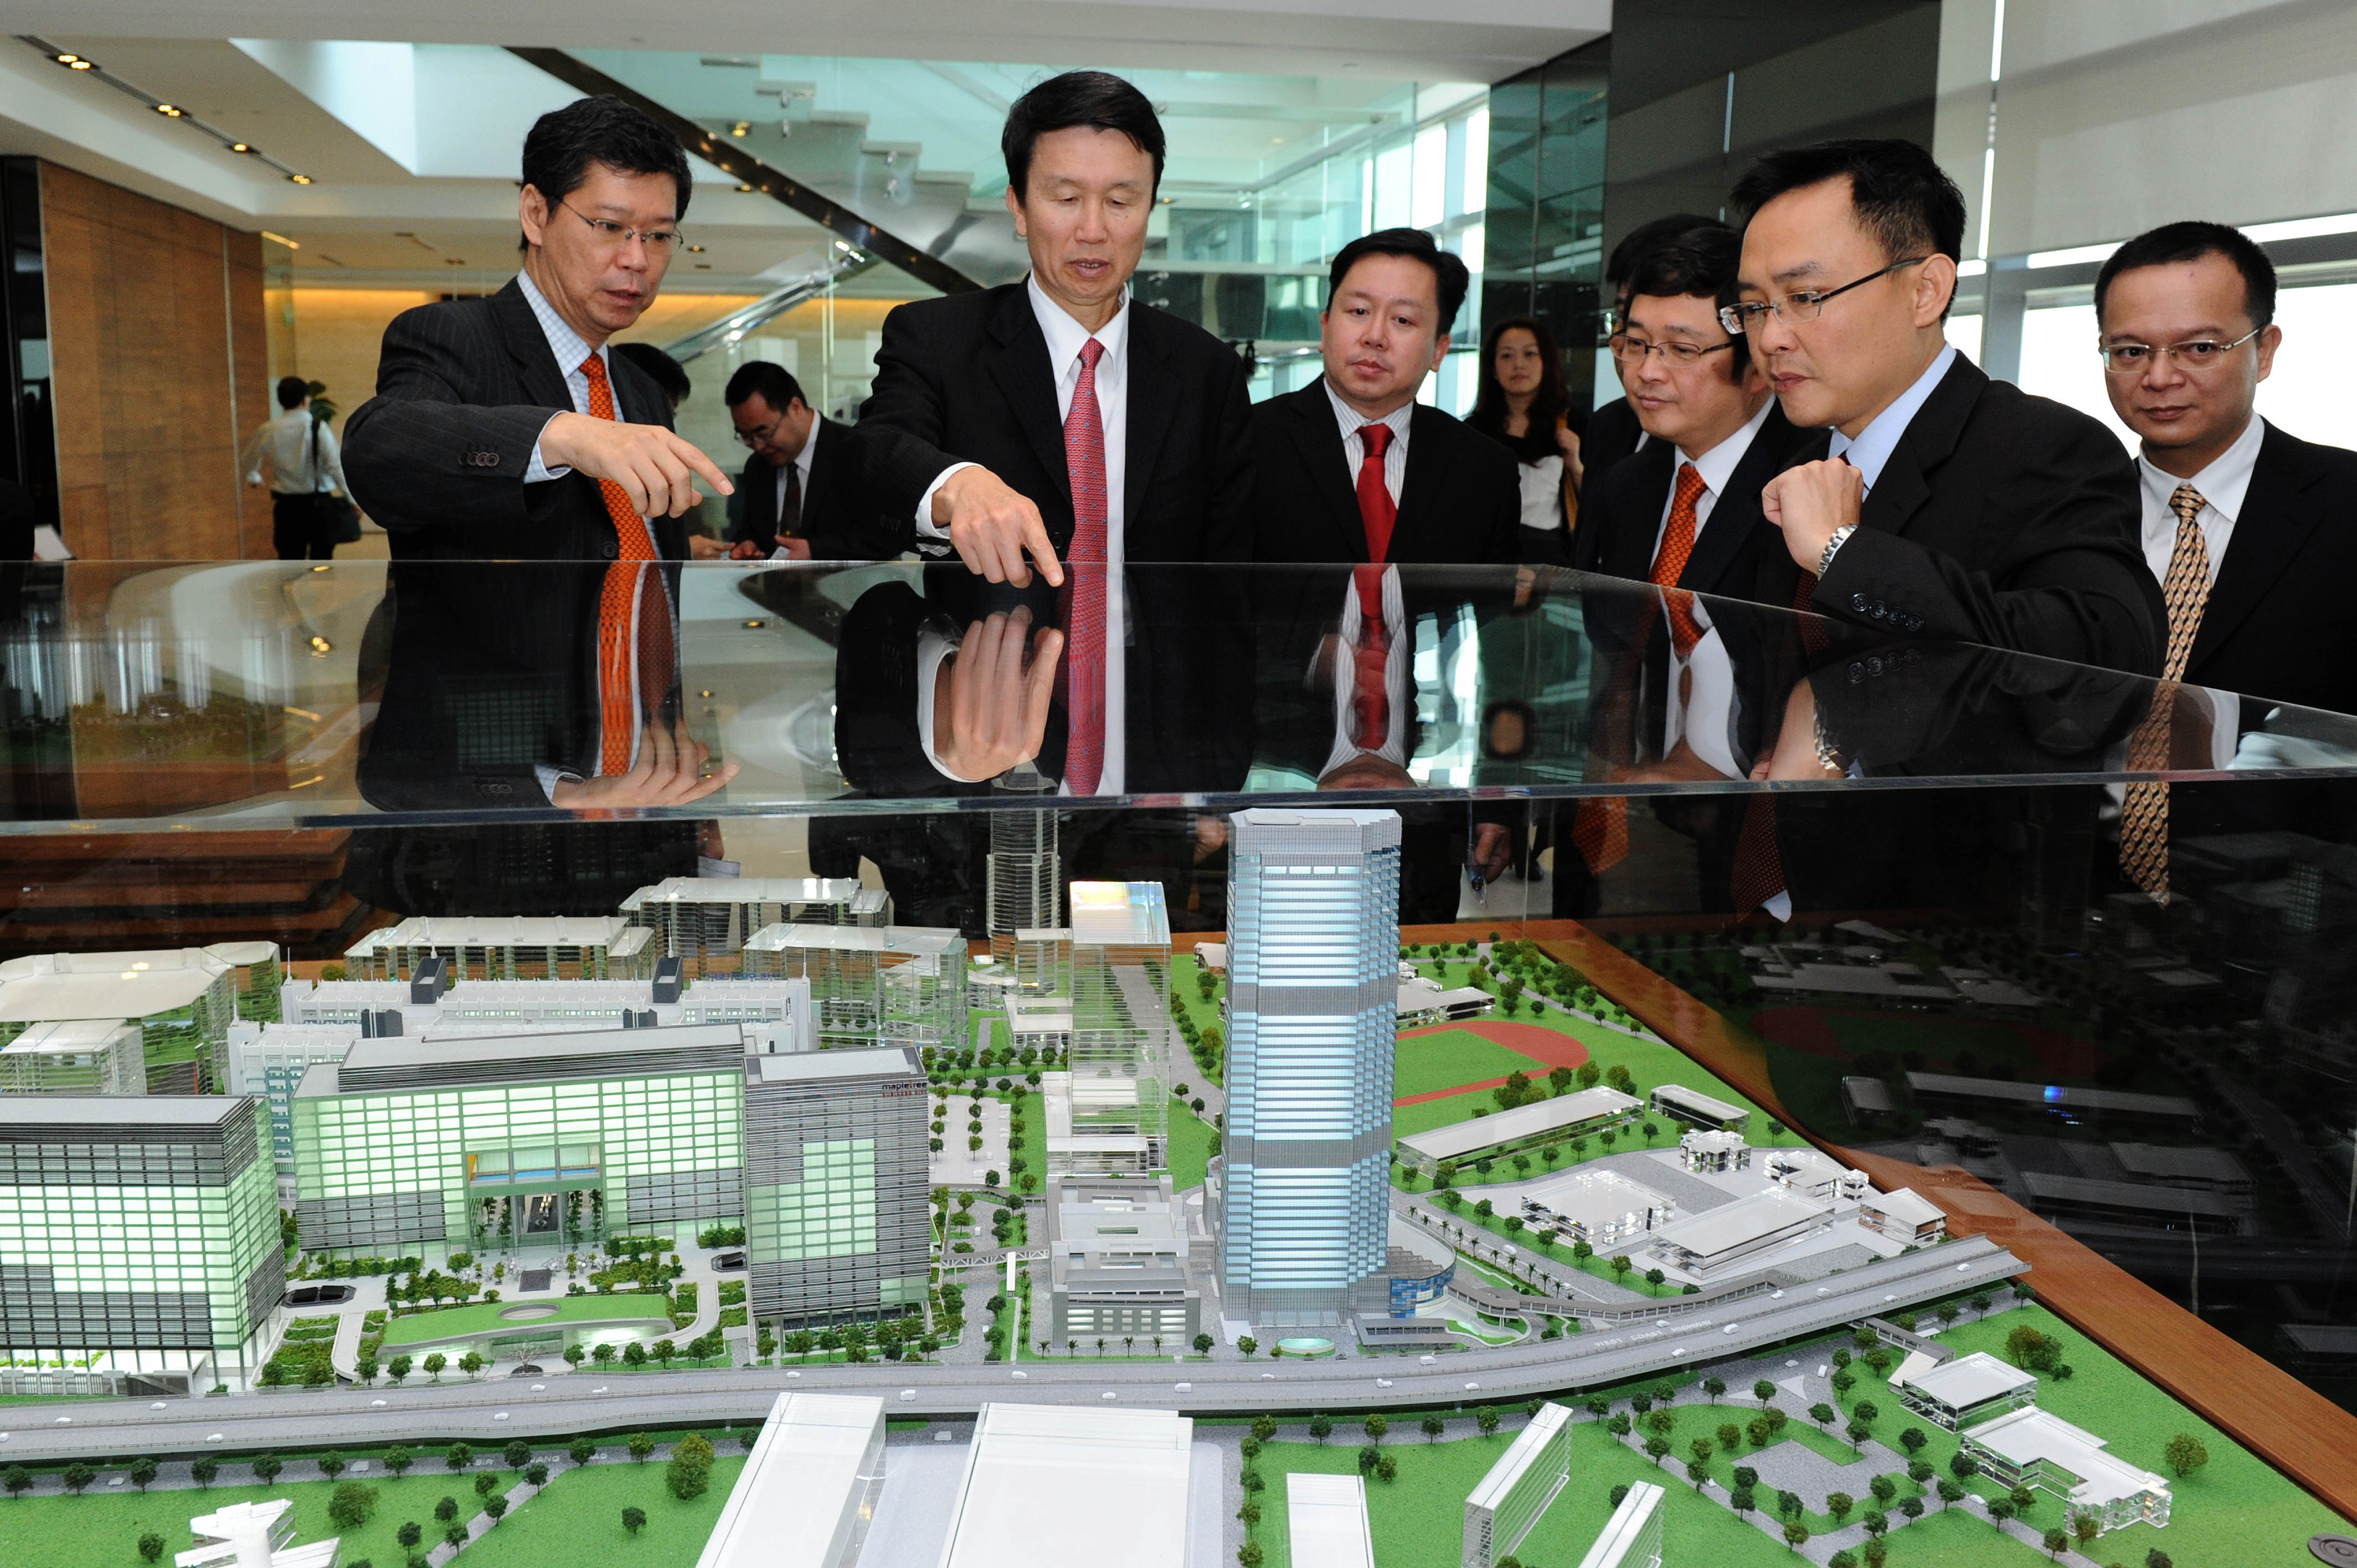 Foshan's Mayor Liu Yuelun viewing the model